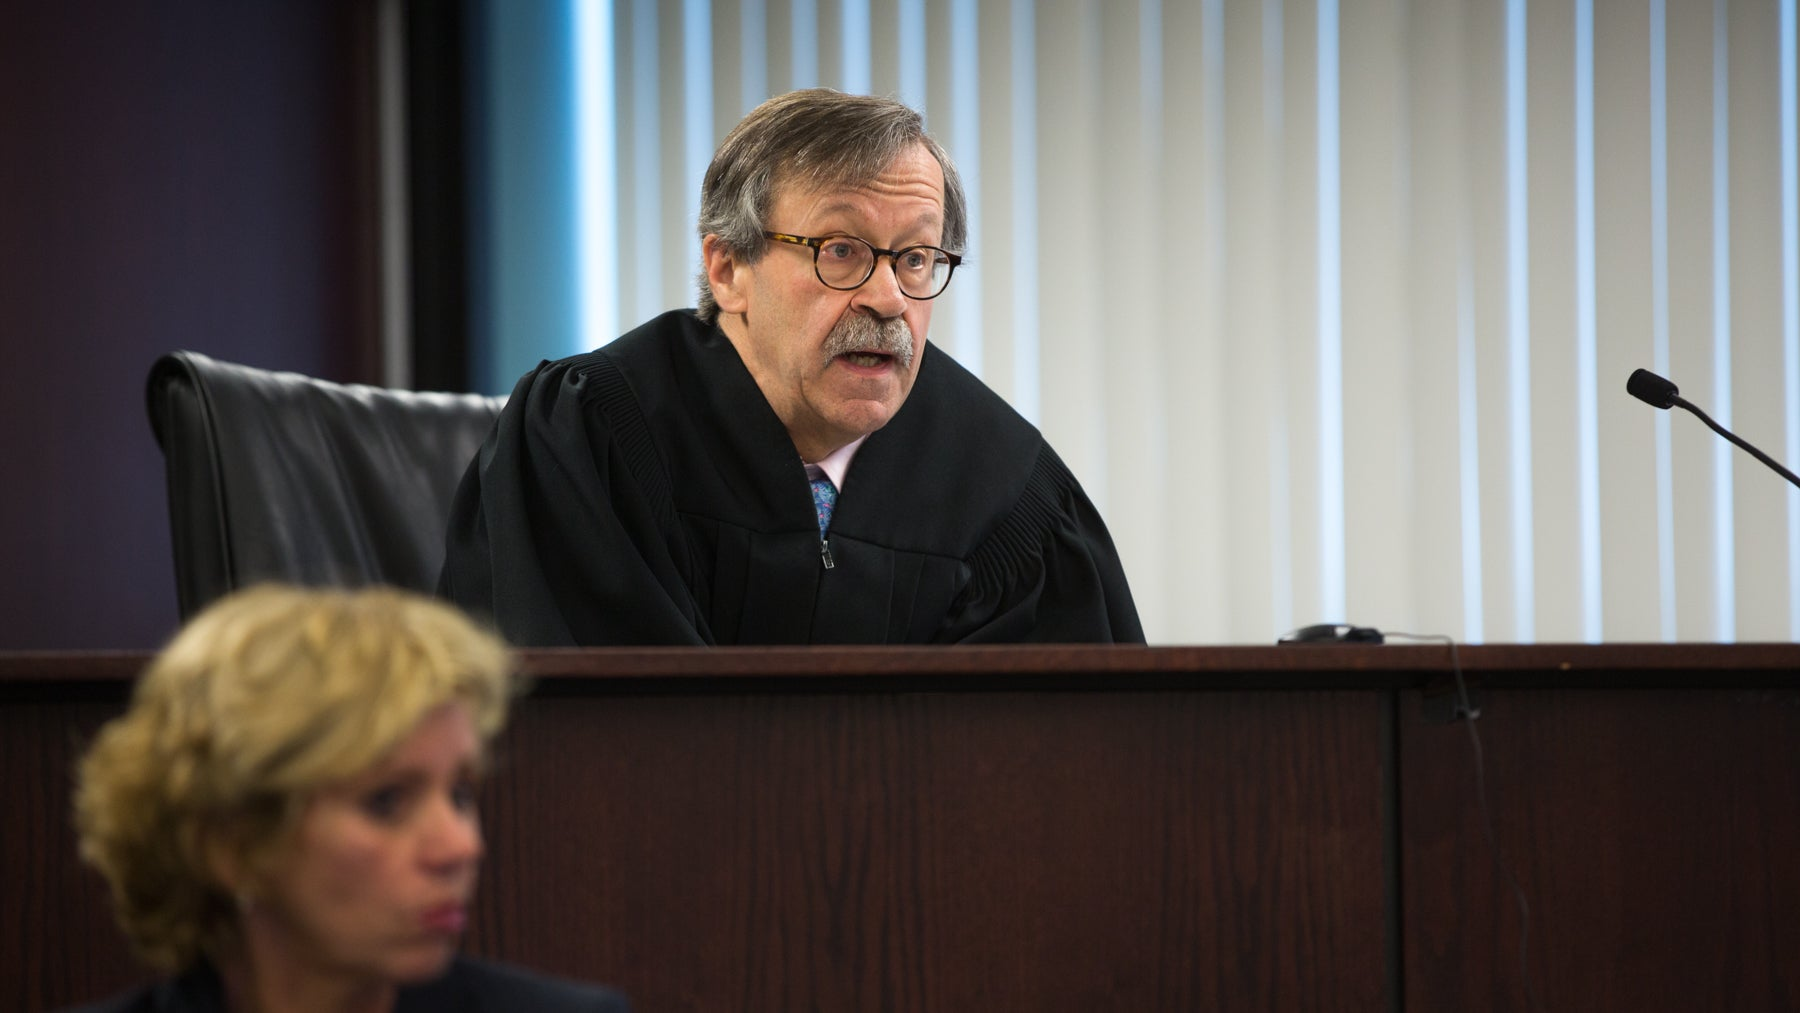 Judge Thomas Billings speaks from the bench about the case of Jay Procopio. Billings will have to decide whether to dismiss the first-degree murder charges against Procopio.